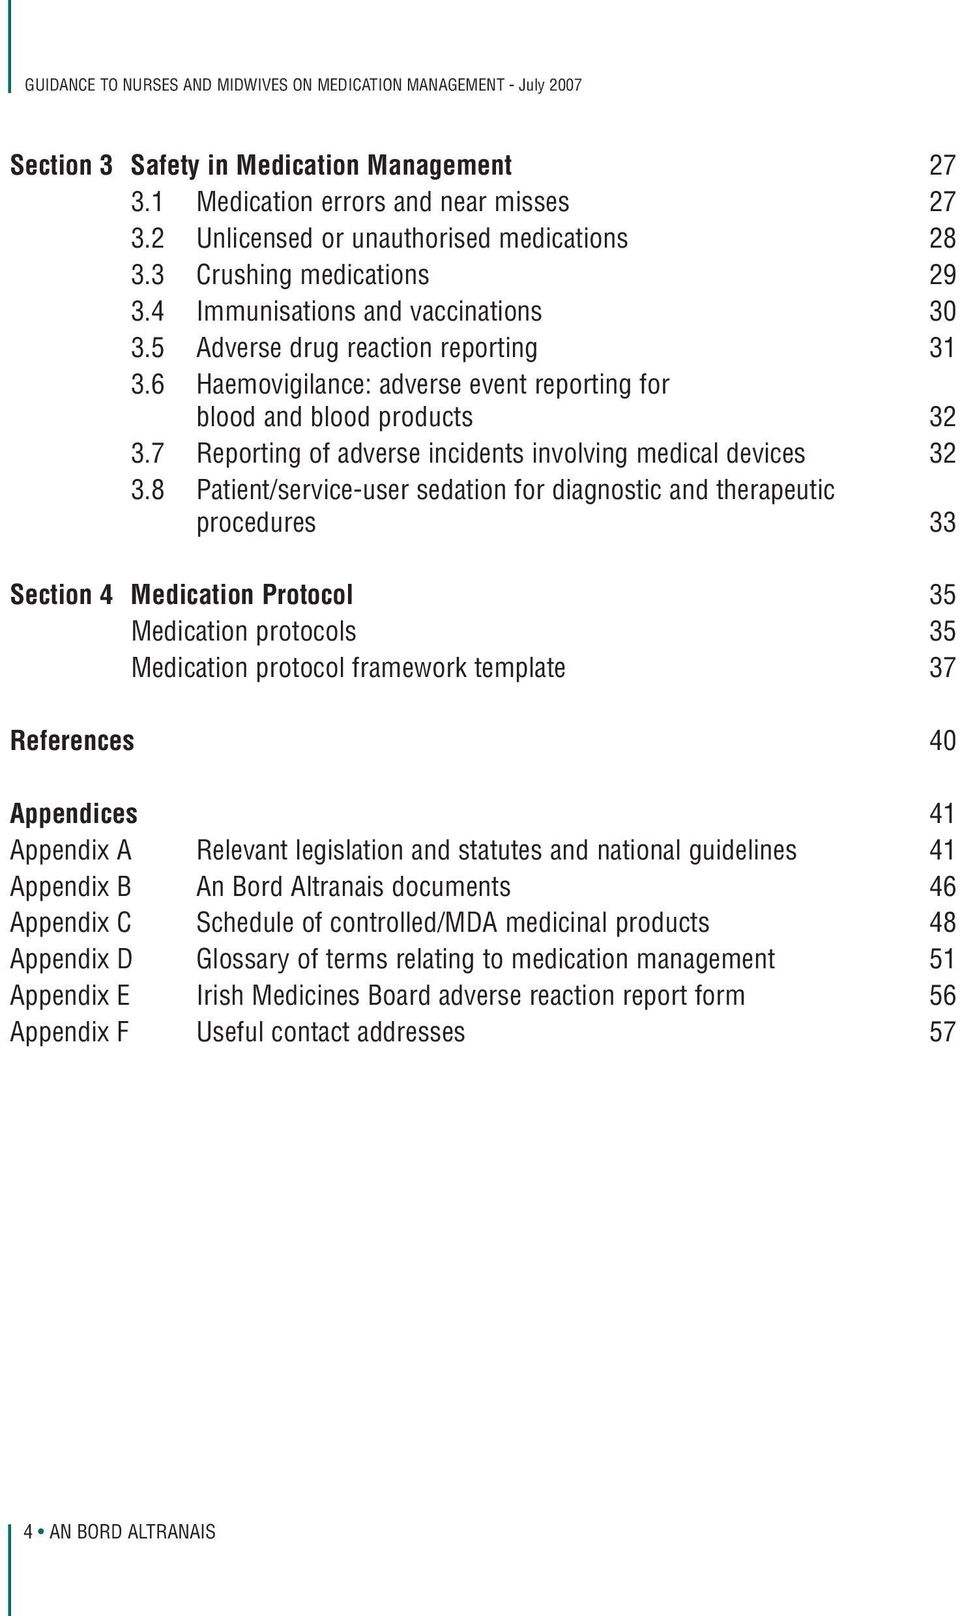 8 Patient/service-user sedation for diagnostic and therapeutic procedures 33 Section 4 Medication Protocol 35 Medication protocols 35 Medication protocol framework template 37 References 40